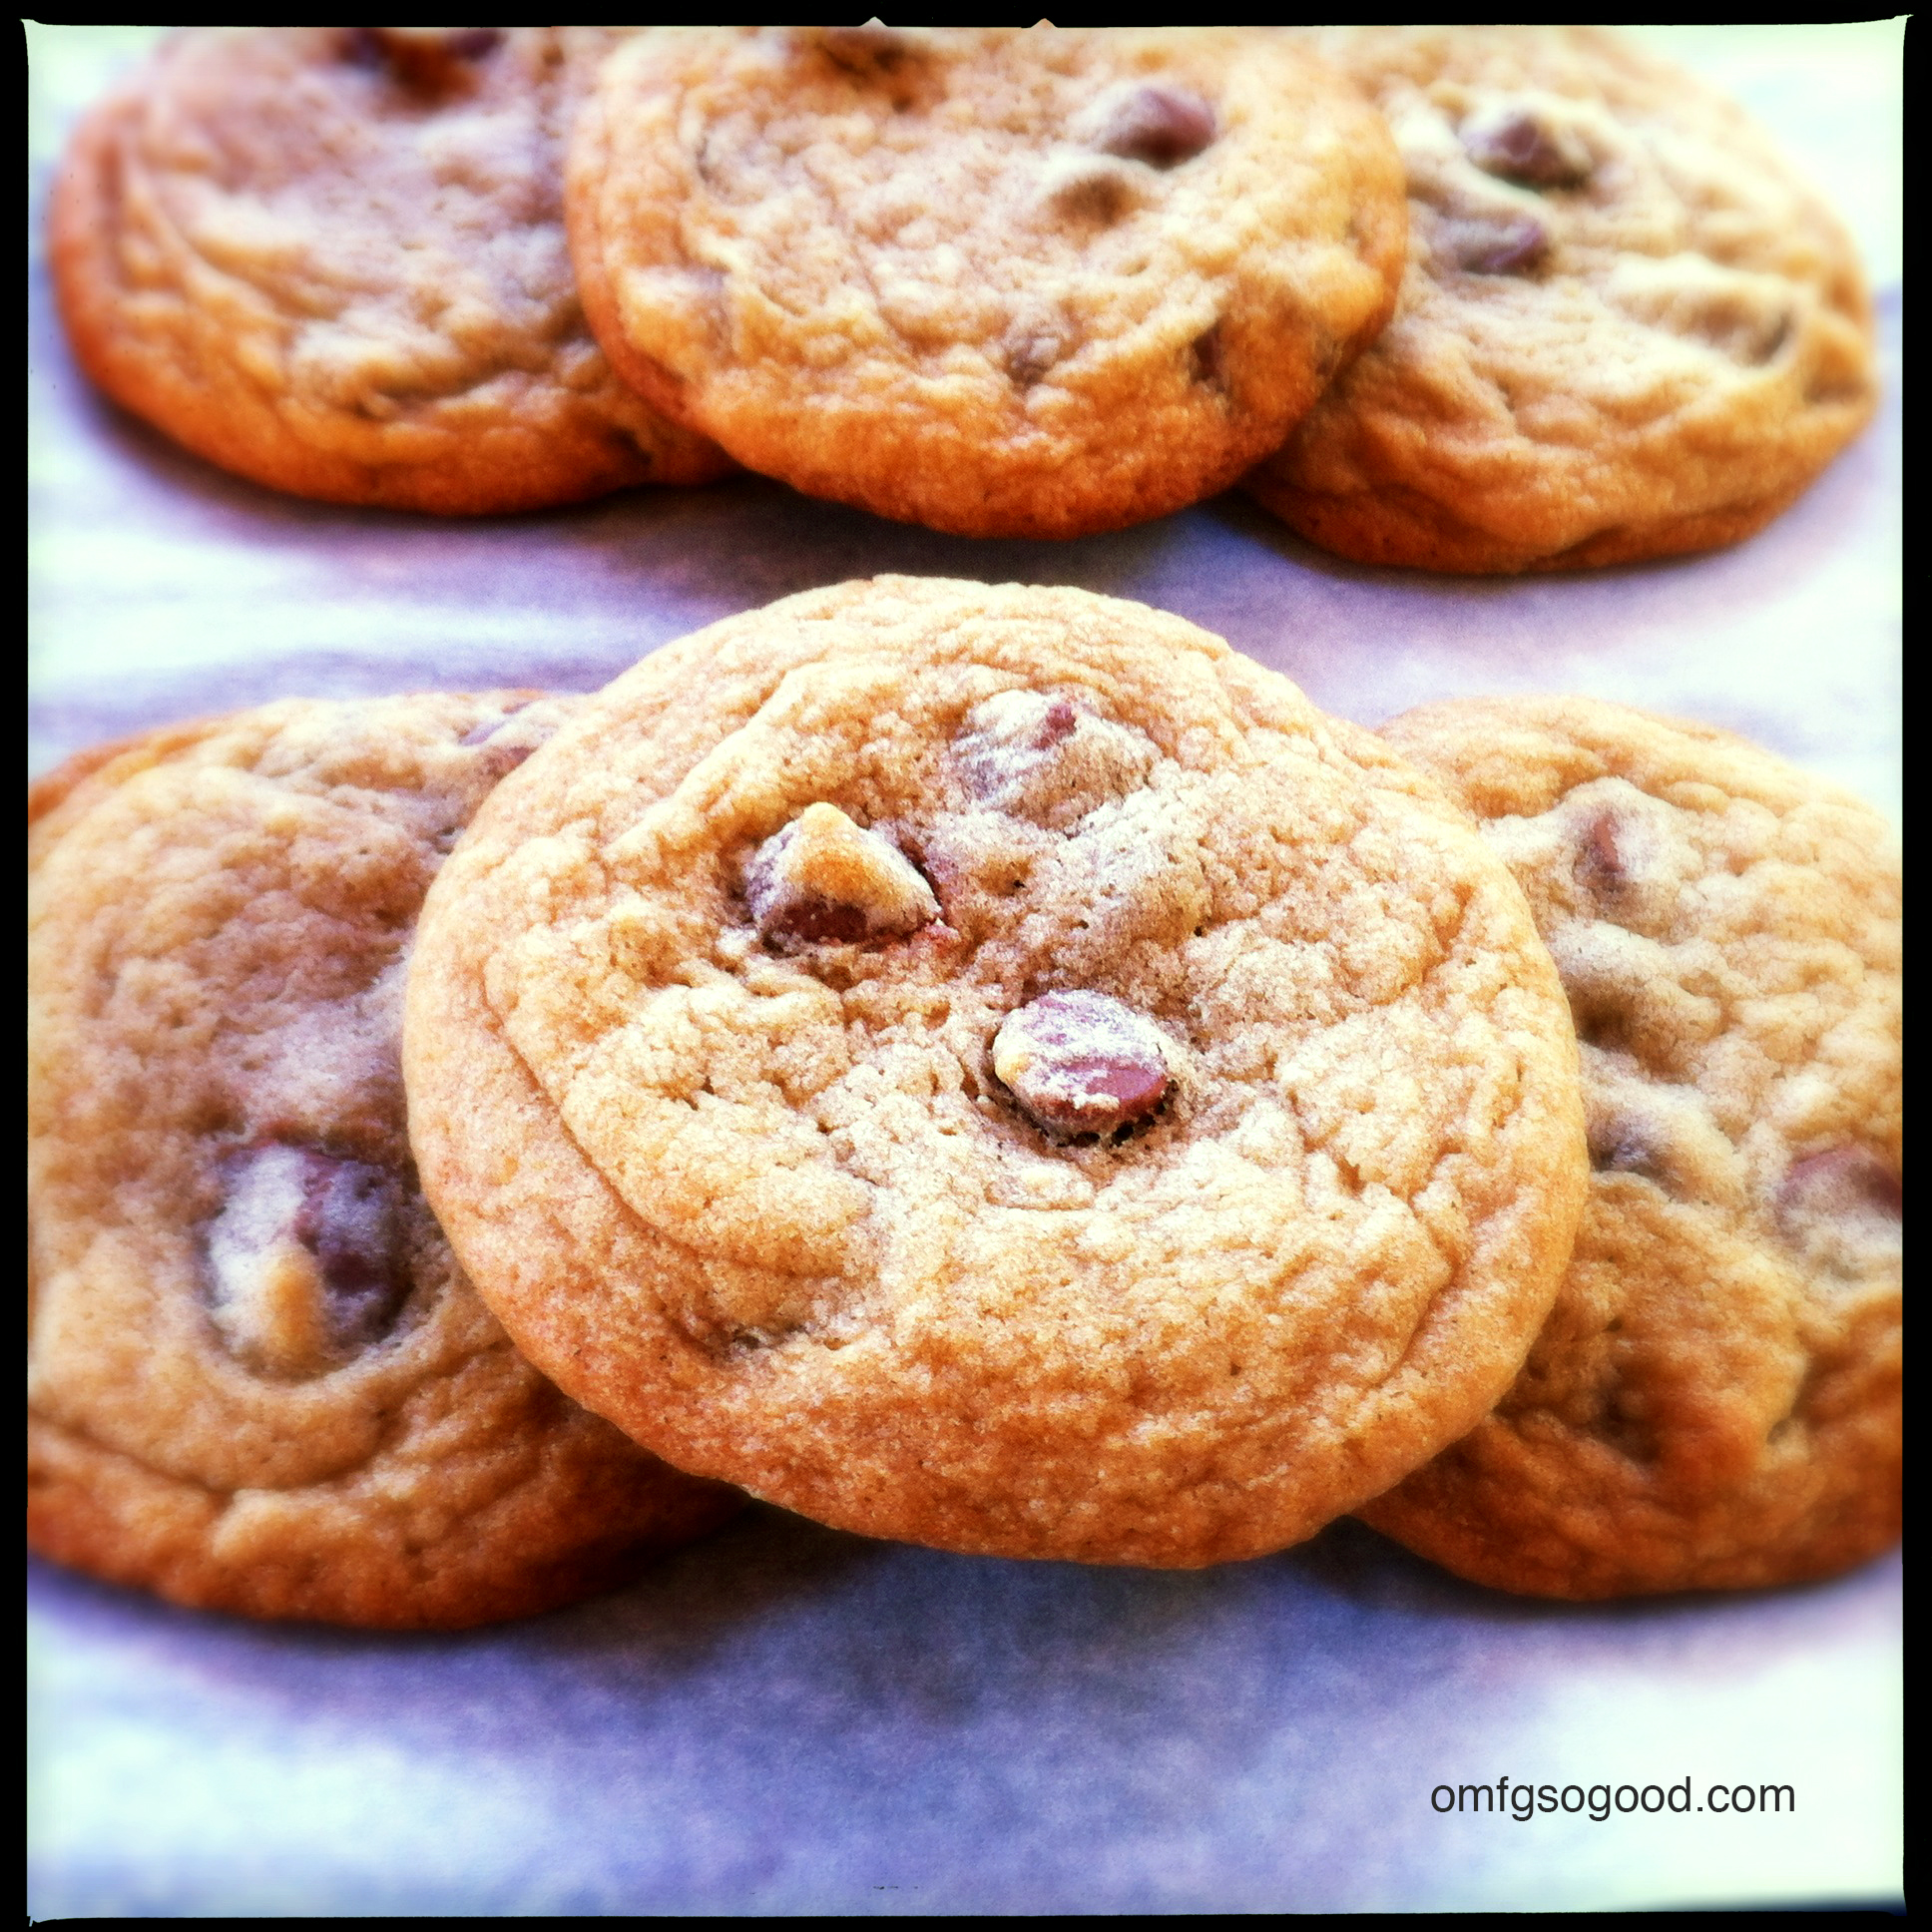 Giant Peanut Butter Cup Marshmallow Cookies Recipes — Dishmaps